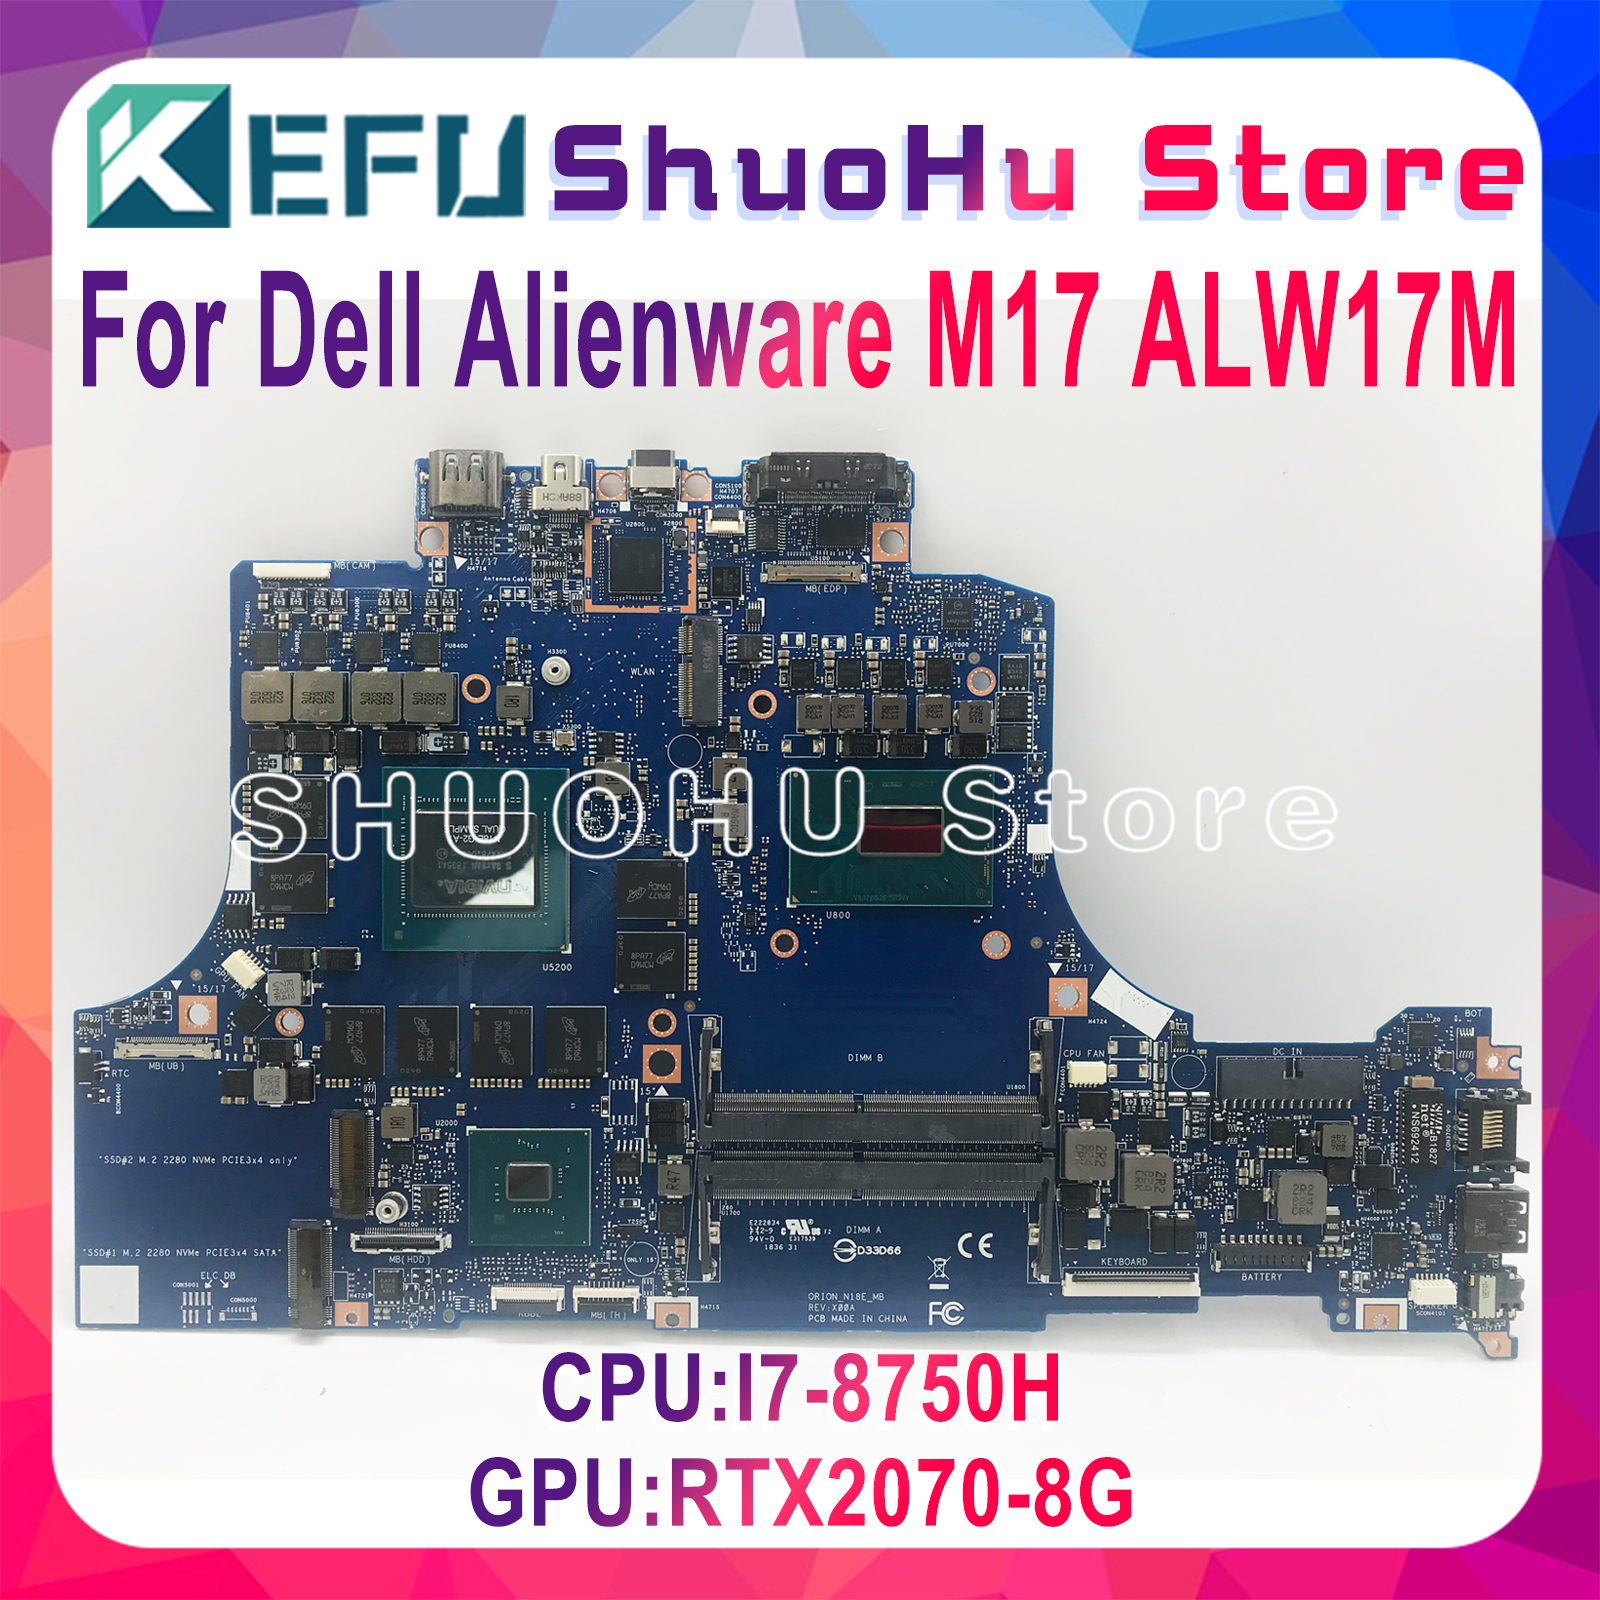 KEFU ORION_N18E_MB motherboard for Dell Alienware M17 ALW17M laptop mainboard I7-8750H CPU RTX2070-8G GPU 100% test work image